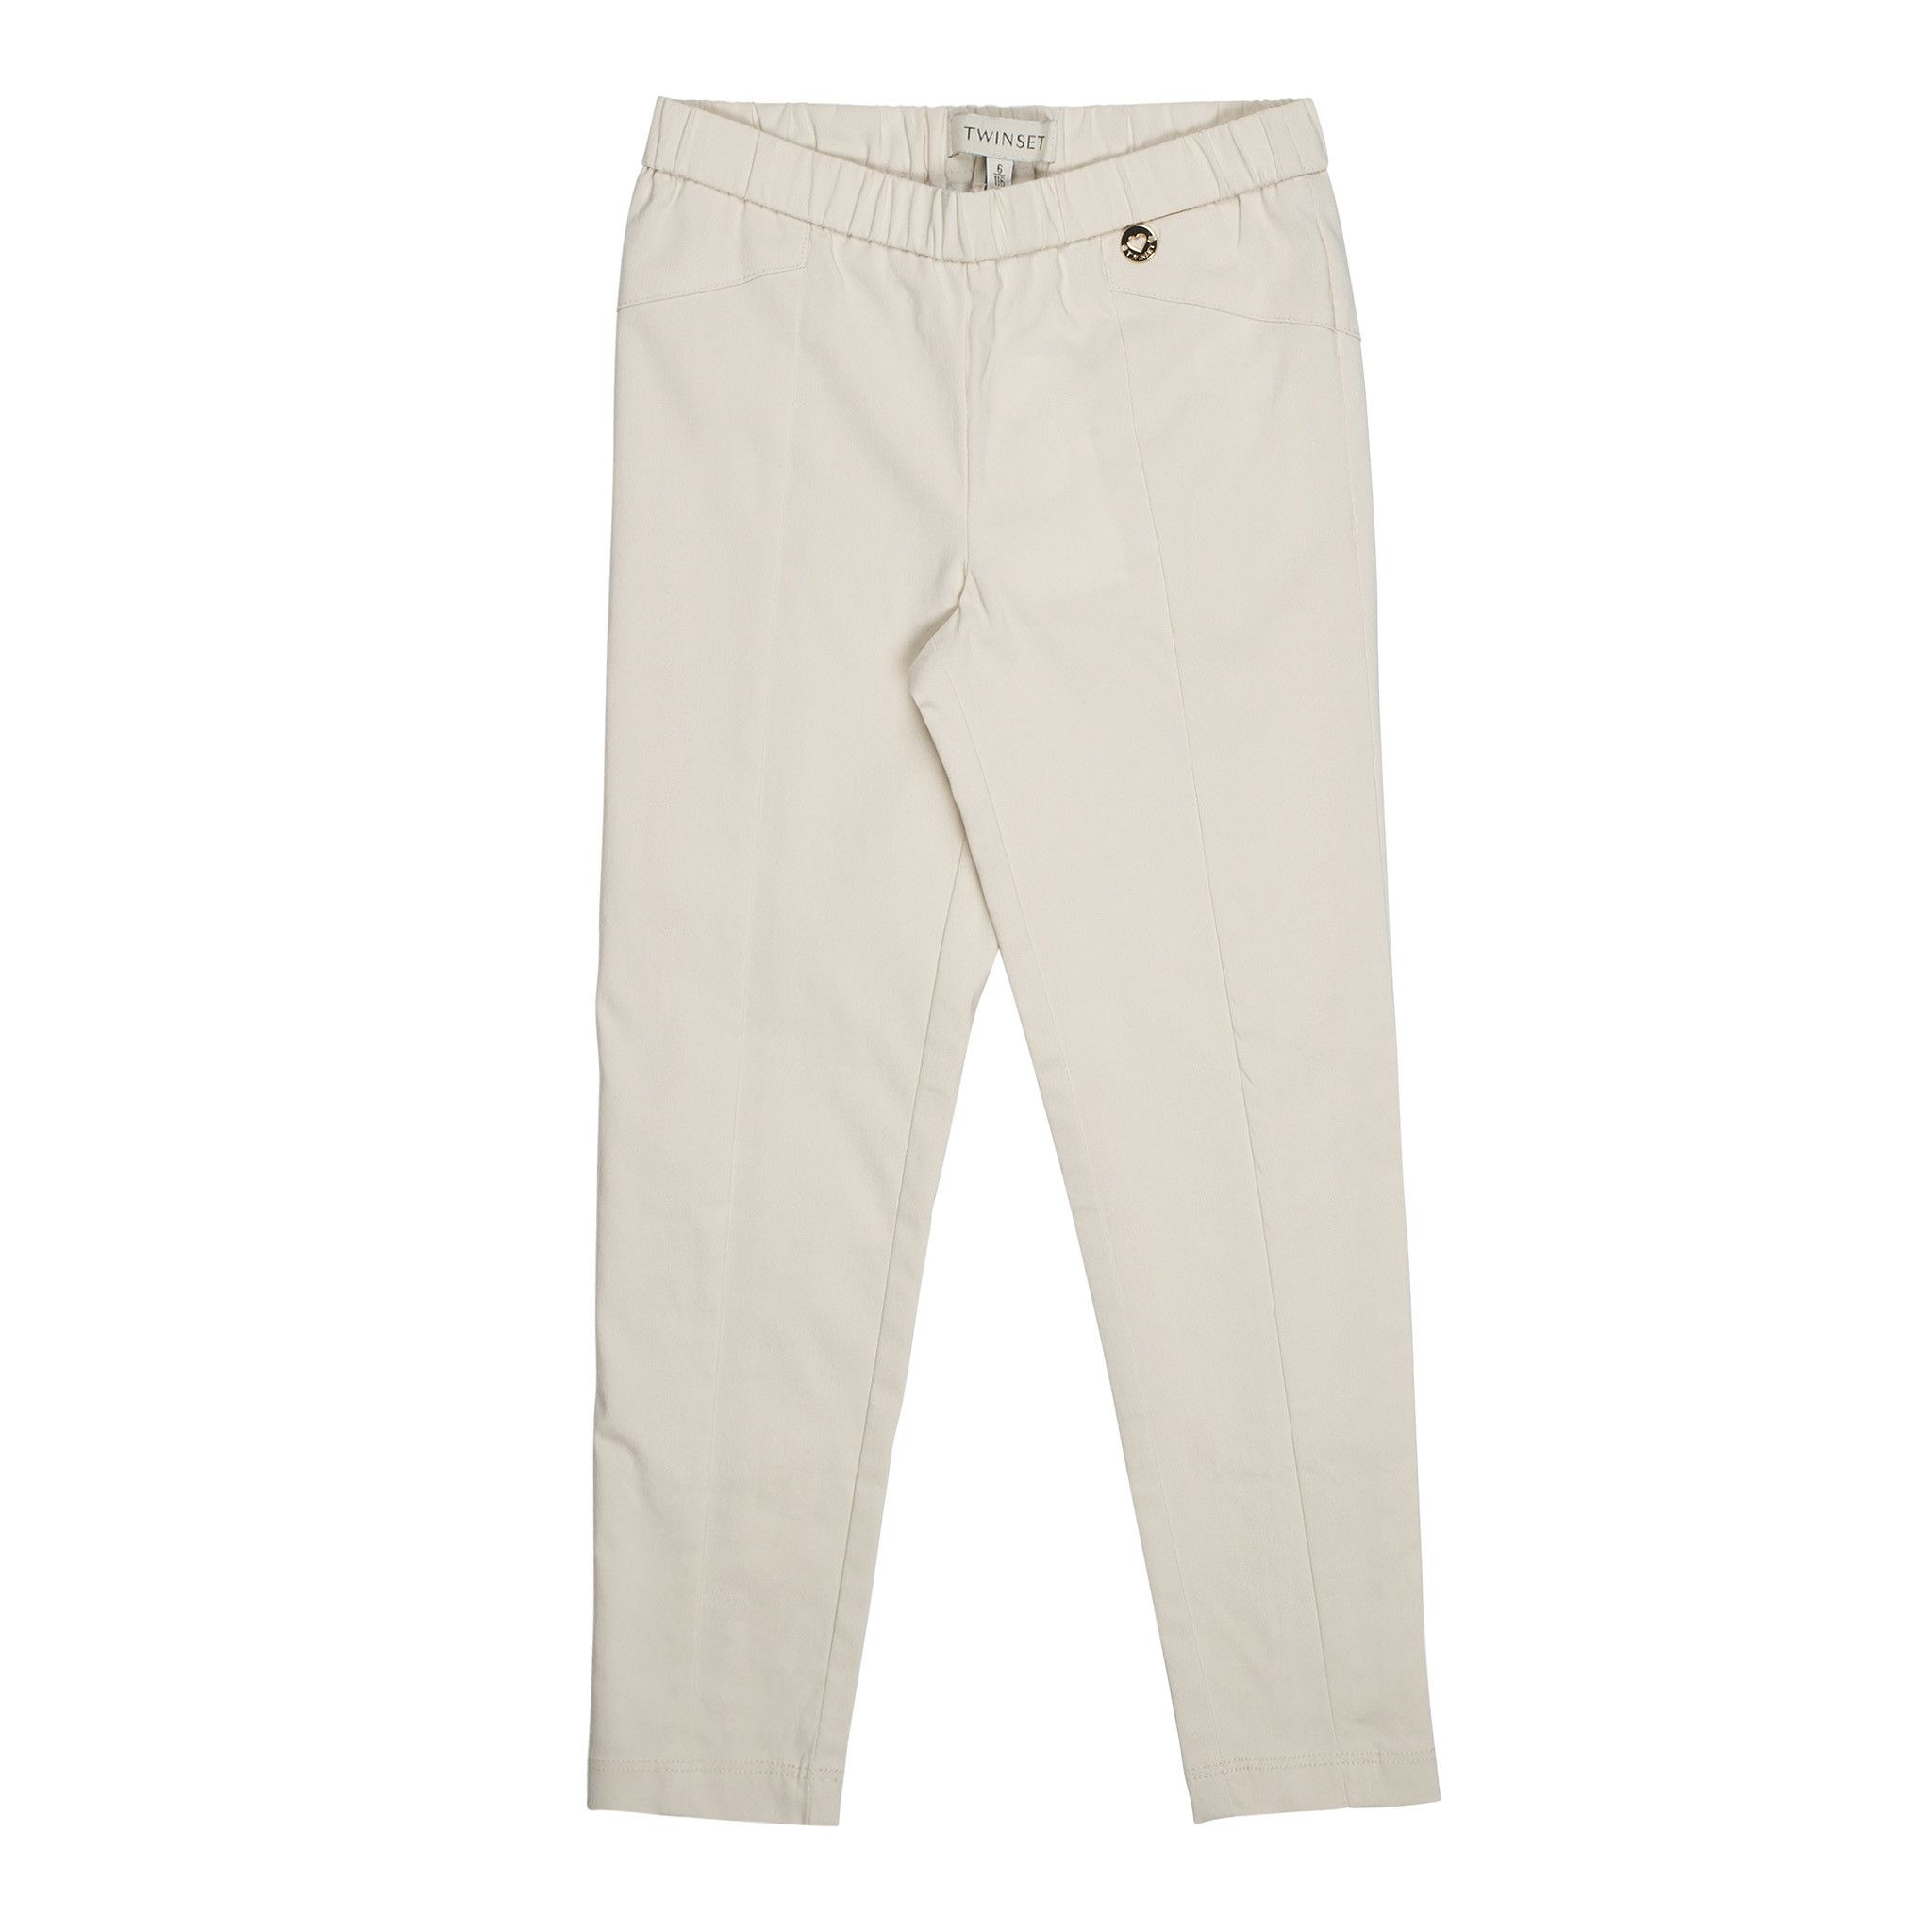 Twinset  Trousers In Brown